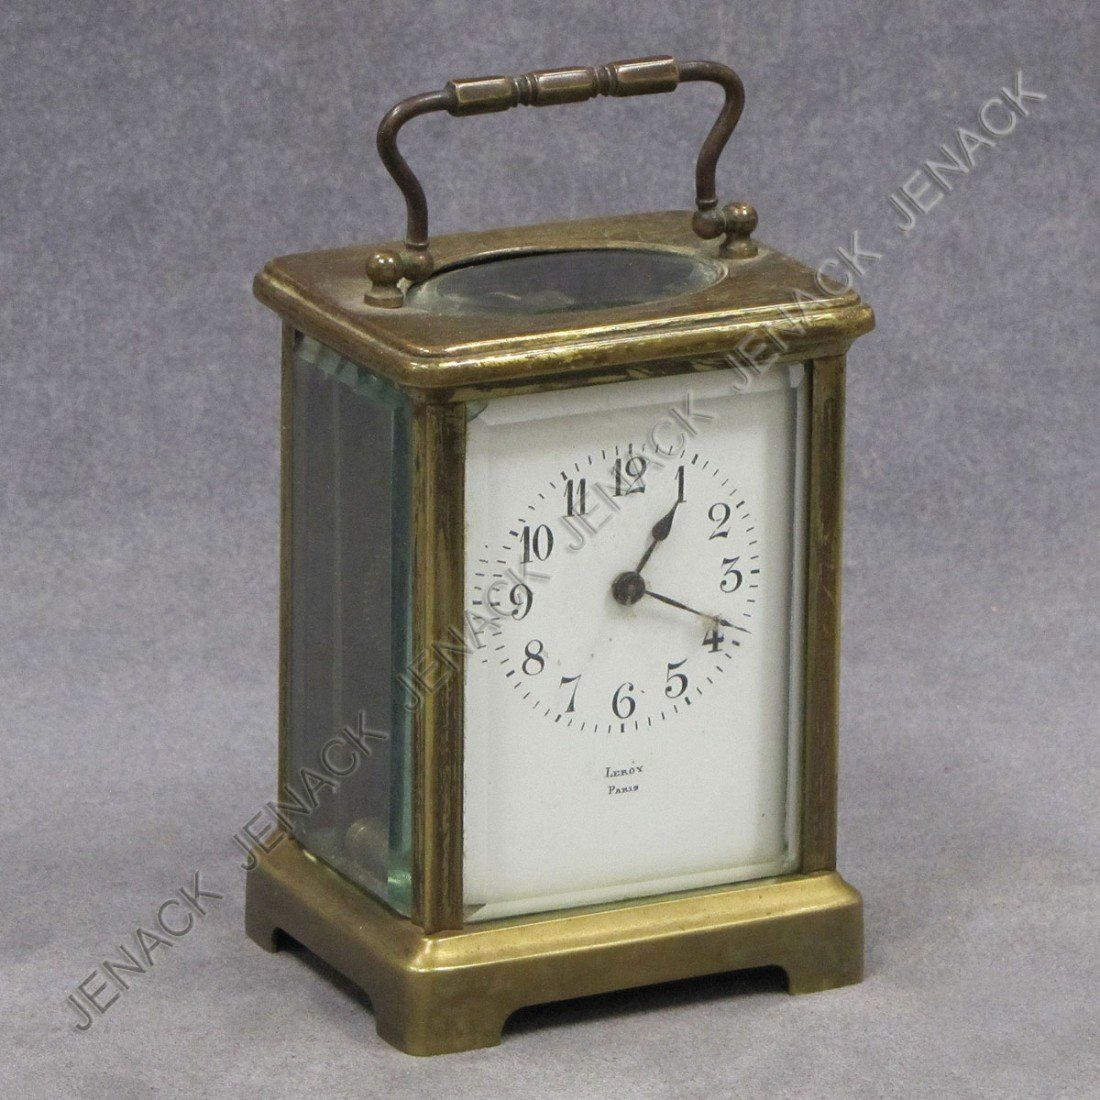 14: FRENCH BRASS CARRIAGE CLOCK, SIGNED LEROY PARIS